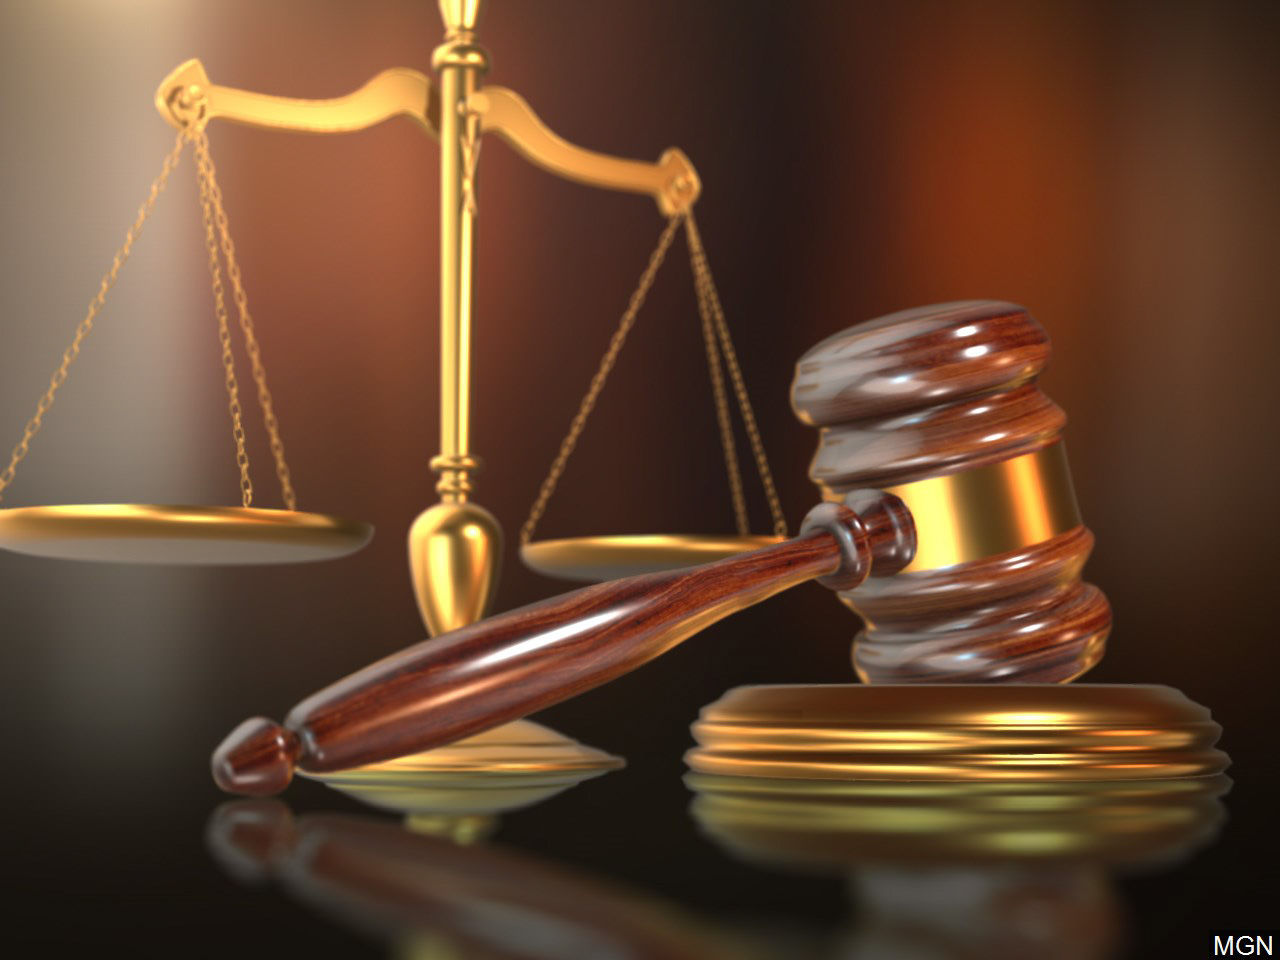 Federal grand jury indicts 39-year-old Shreveport man for bankruptcy fraud